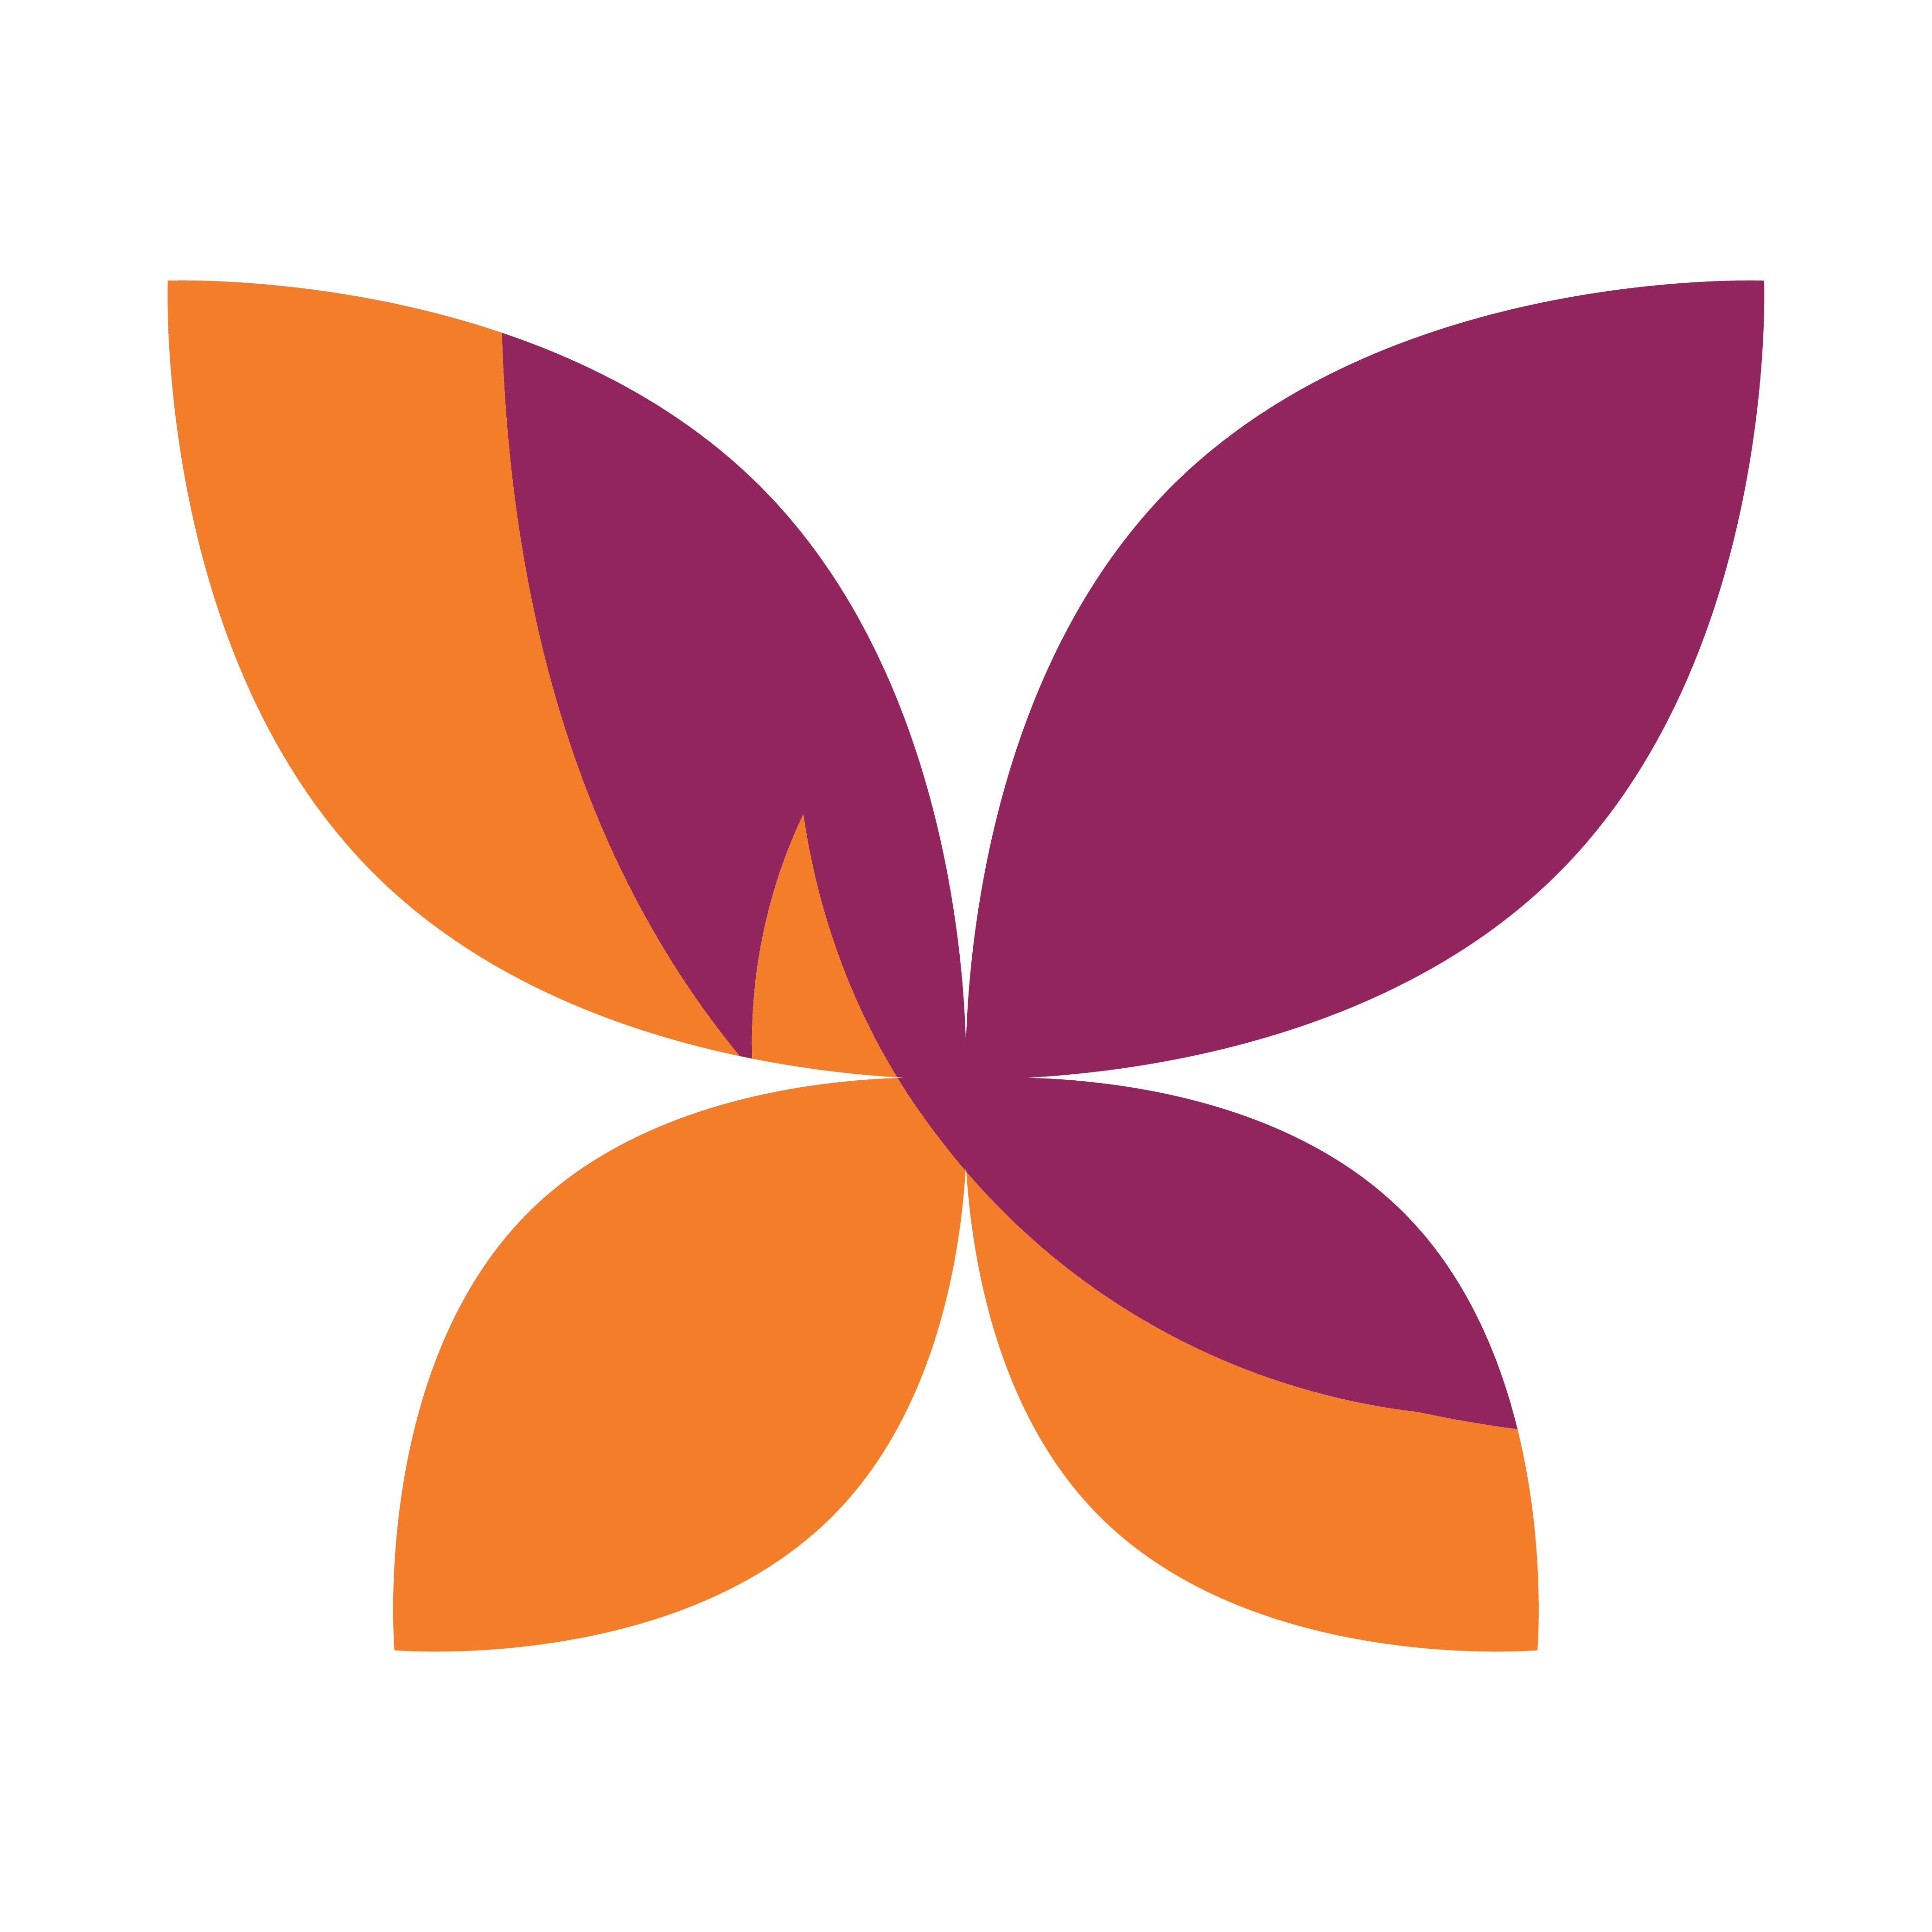 Live More butterfly icon